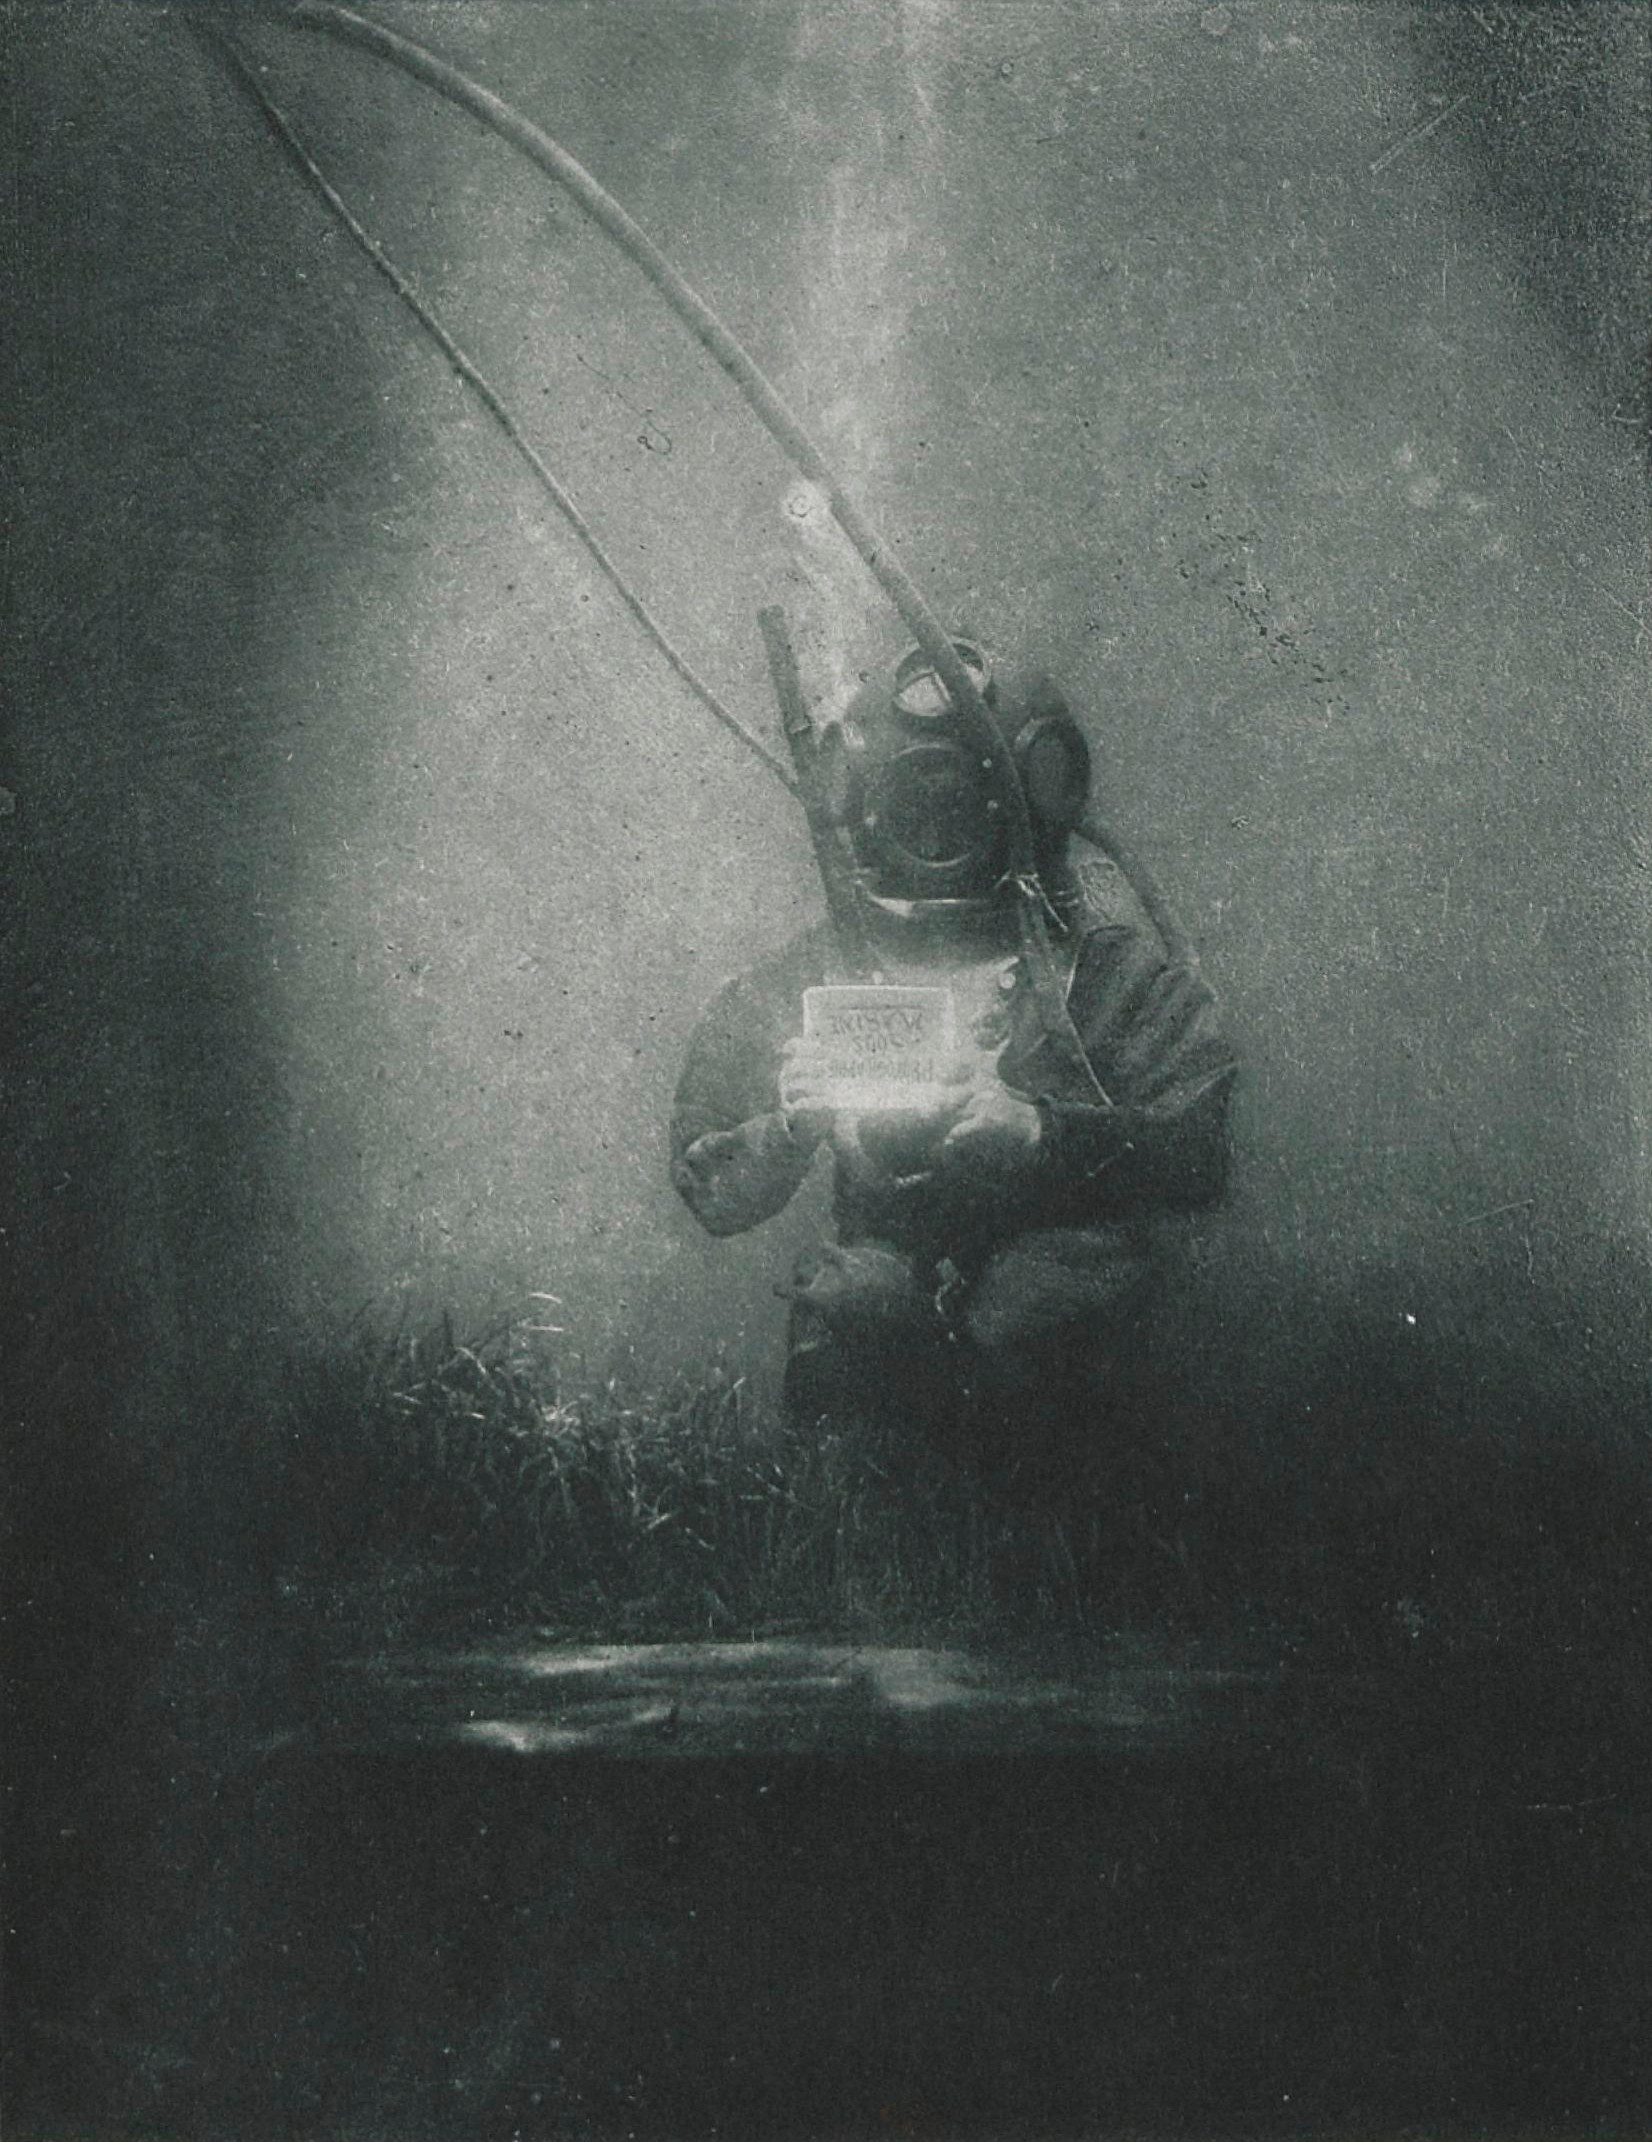 The first underwater photograph